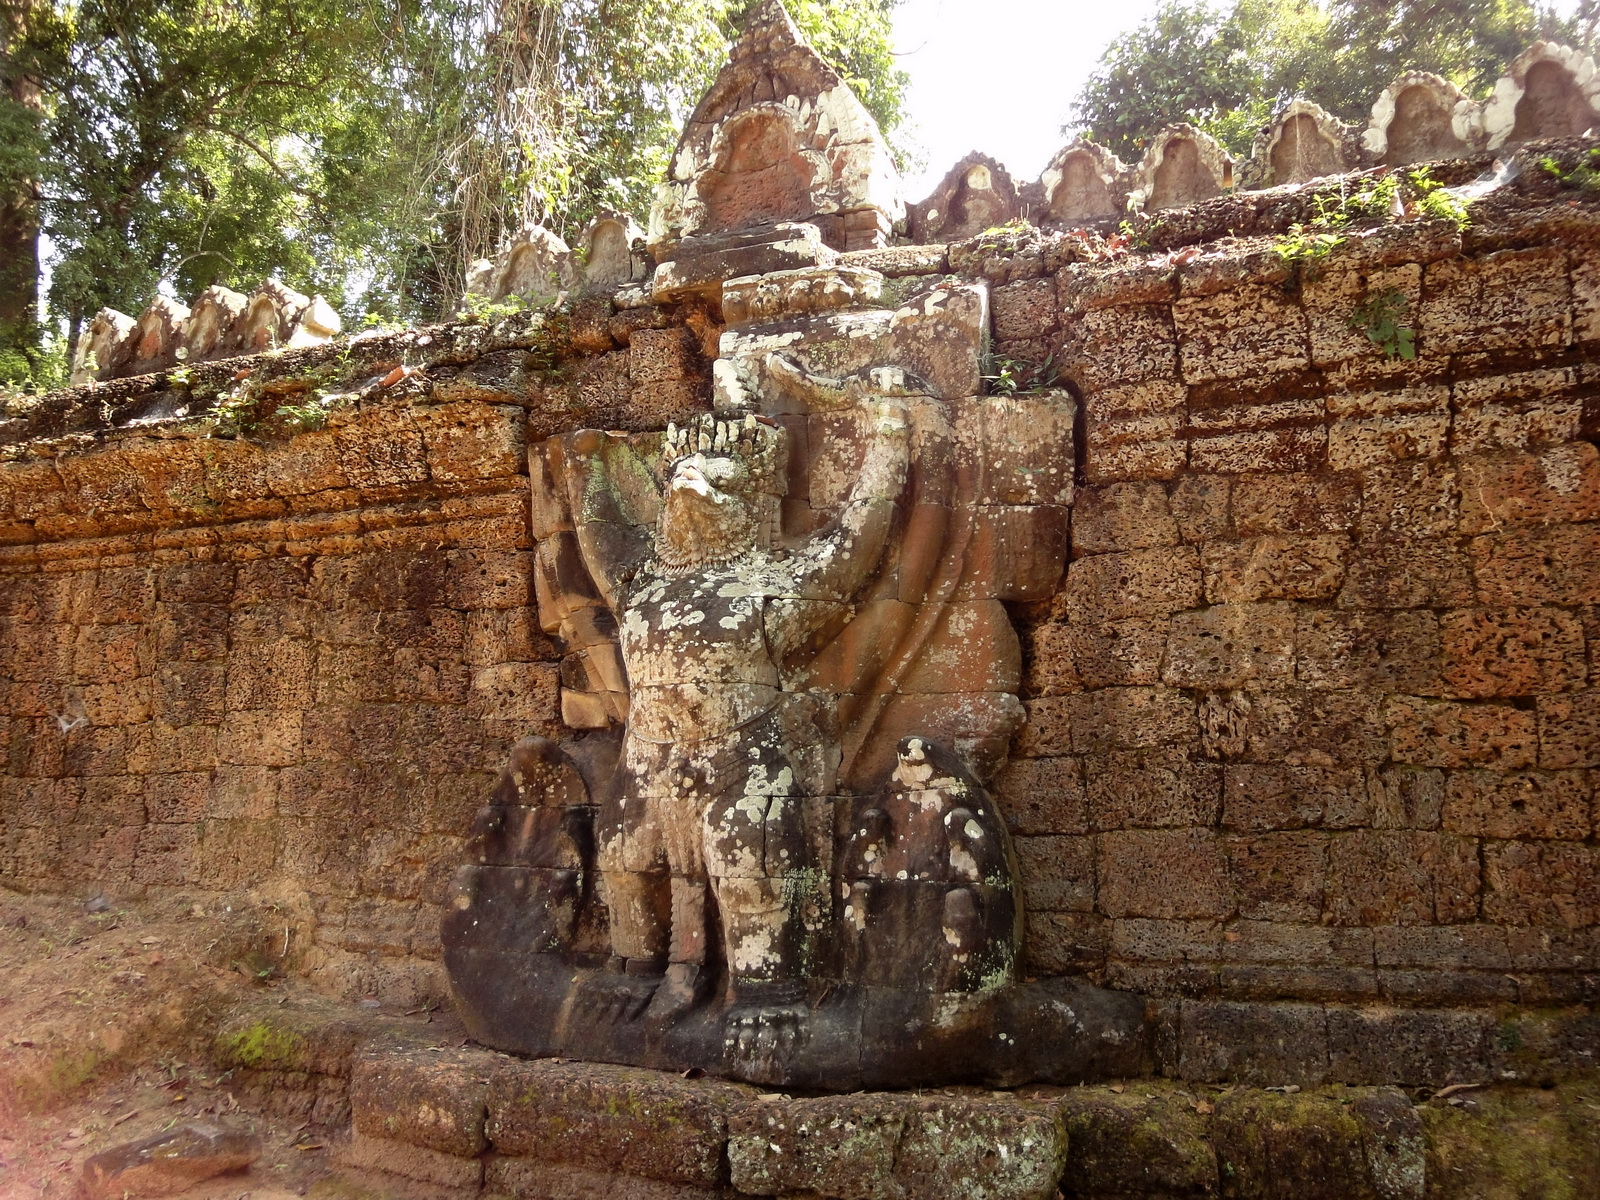 Preah Khan Temple 4th wall enclosure 5m Garuda holding Nagas 01